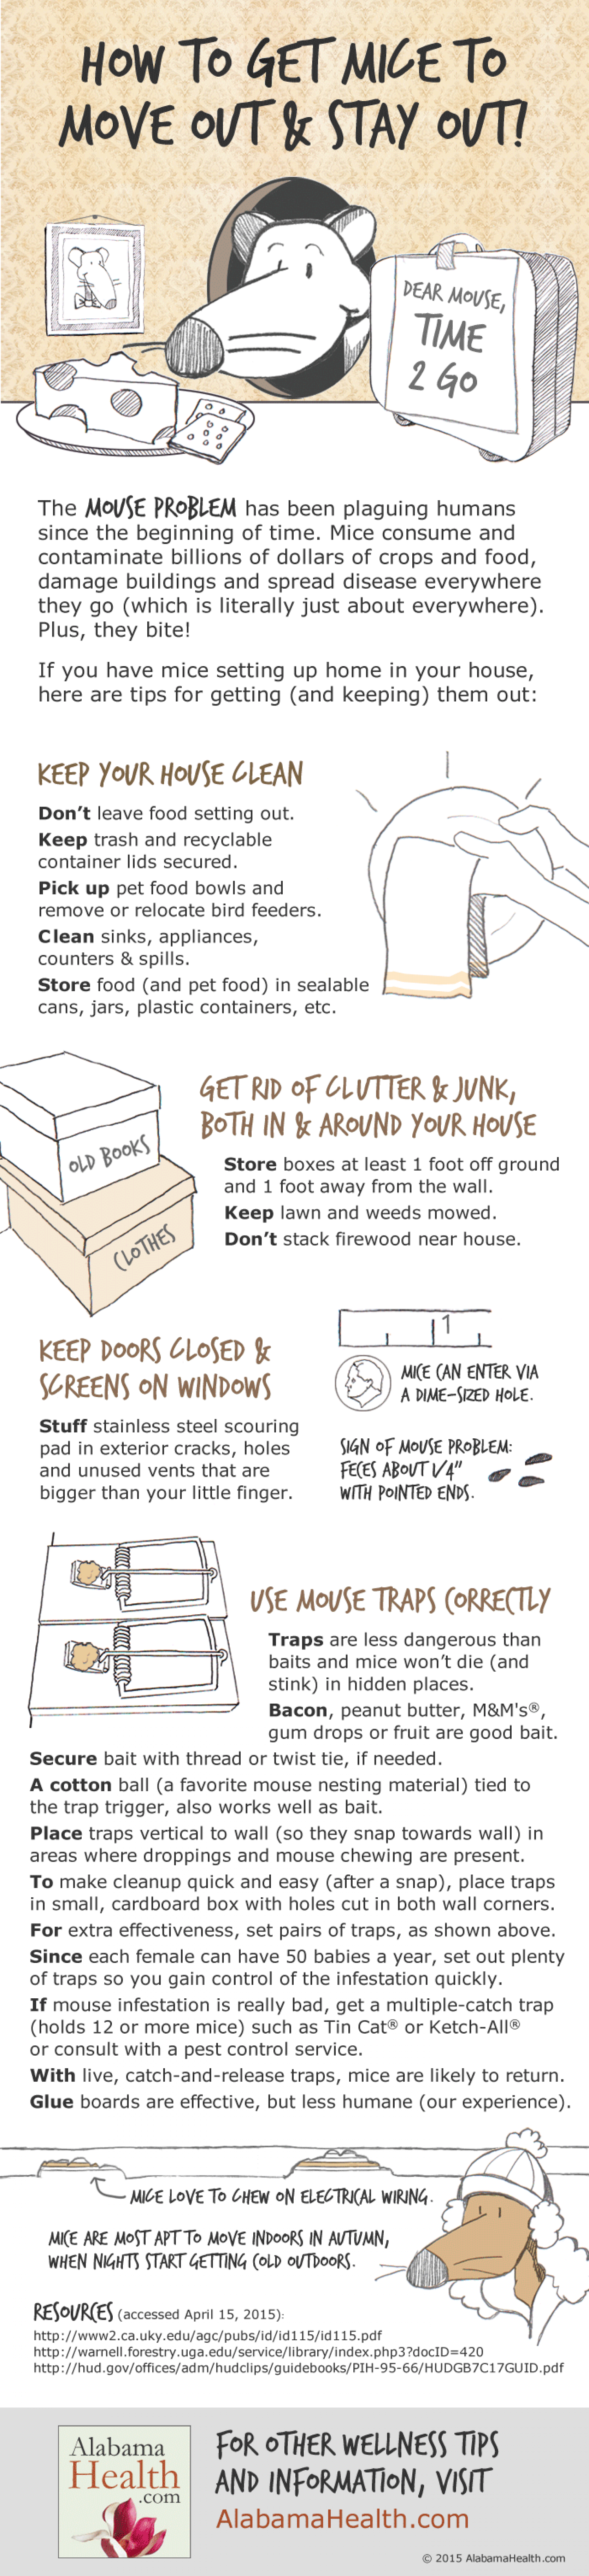 Tips for Getting Rid of Mice - and Preventing Their Return Infographic